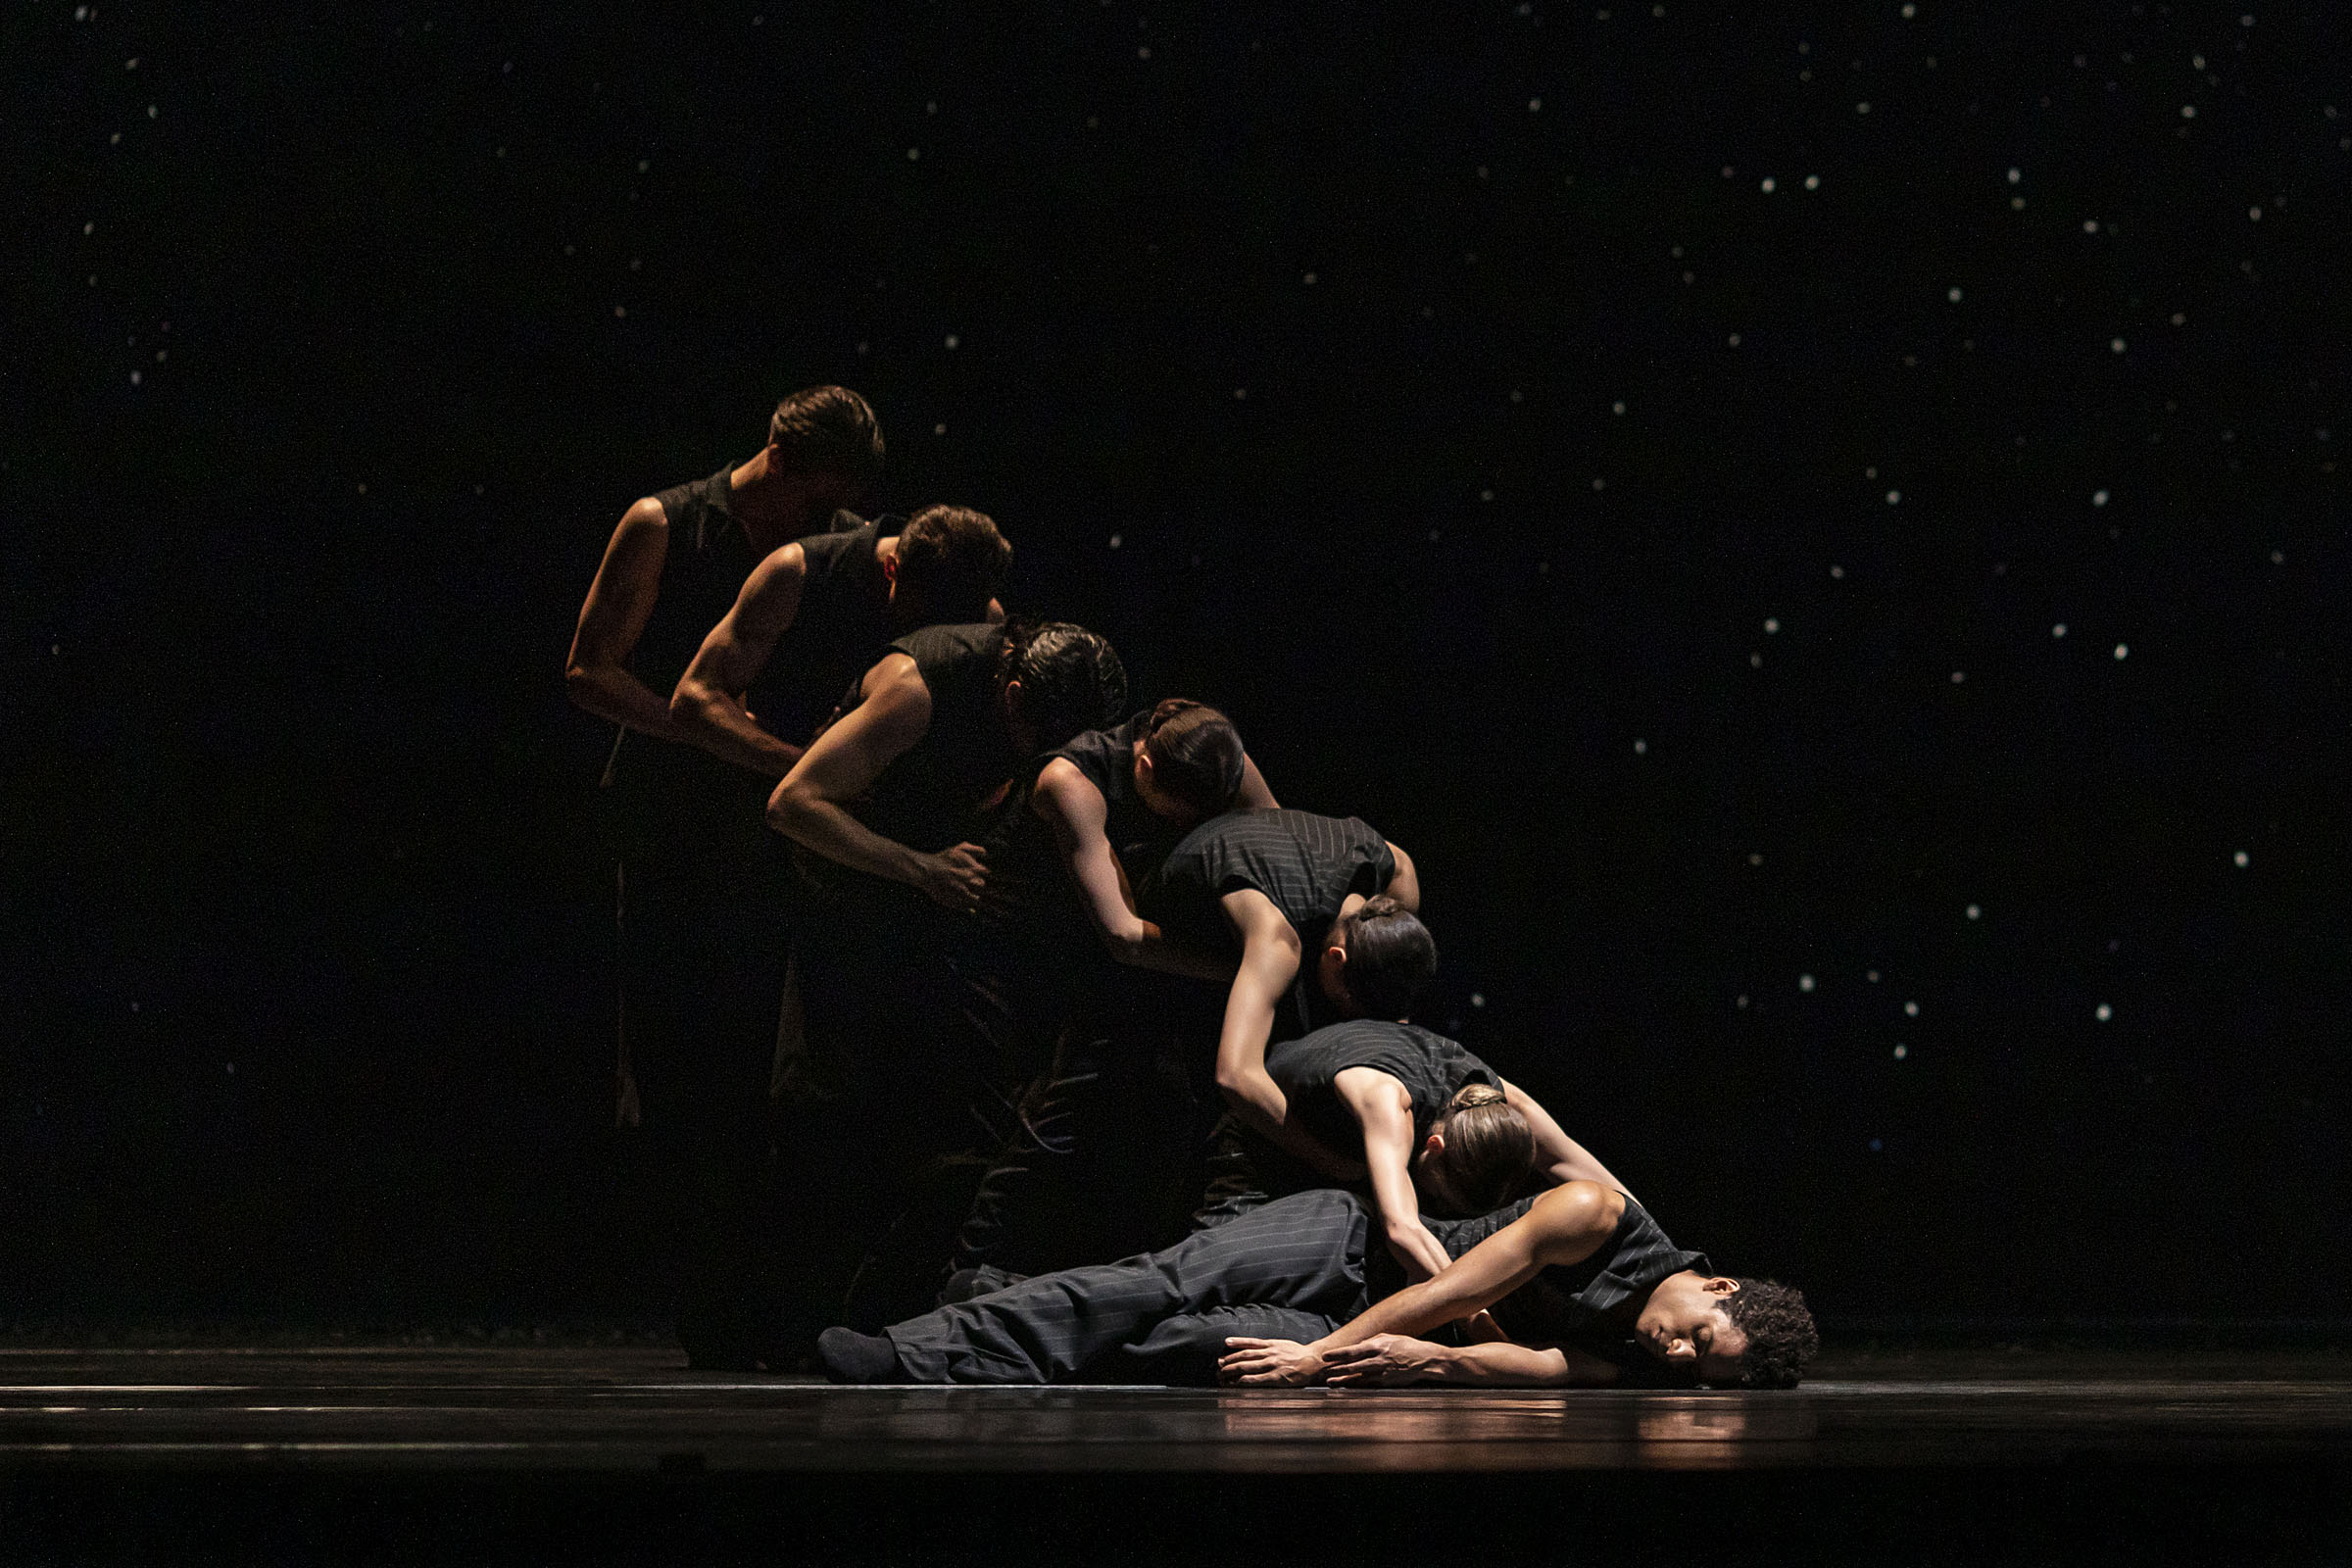 Marcelino Sambe and the cast in 'Solo Echo', part of '21st Century Choreographers' at The Royal Opera House